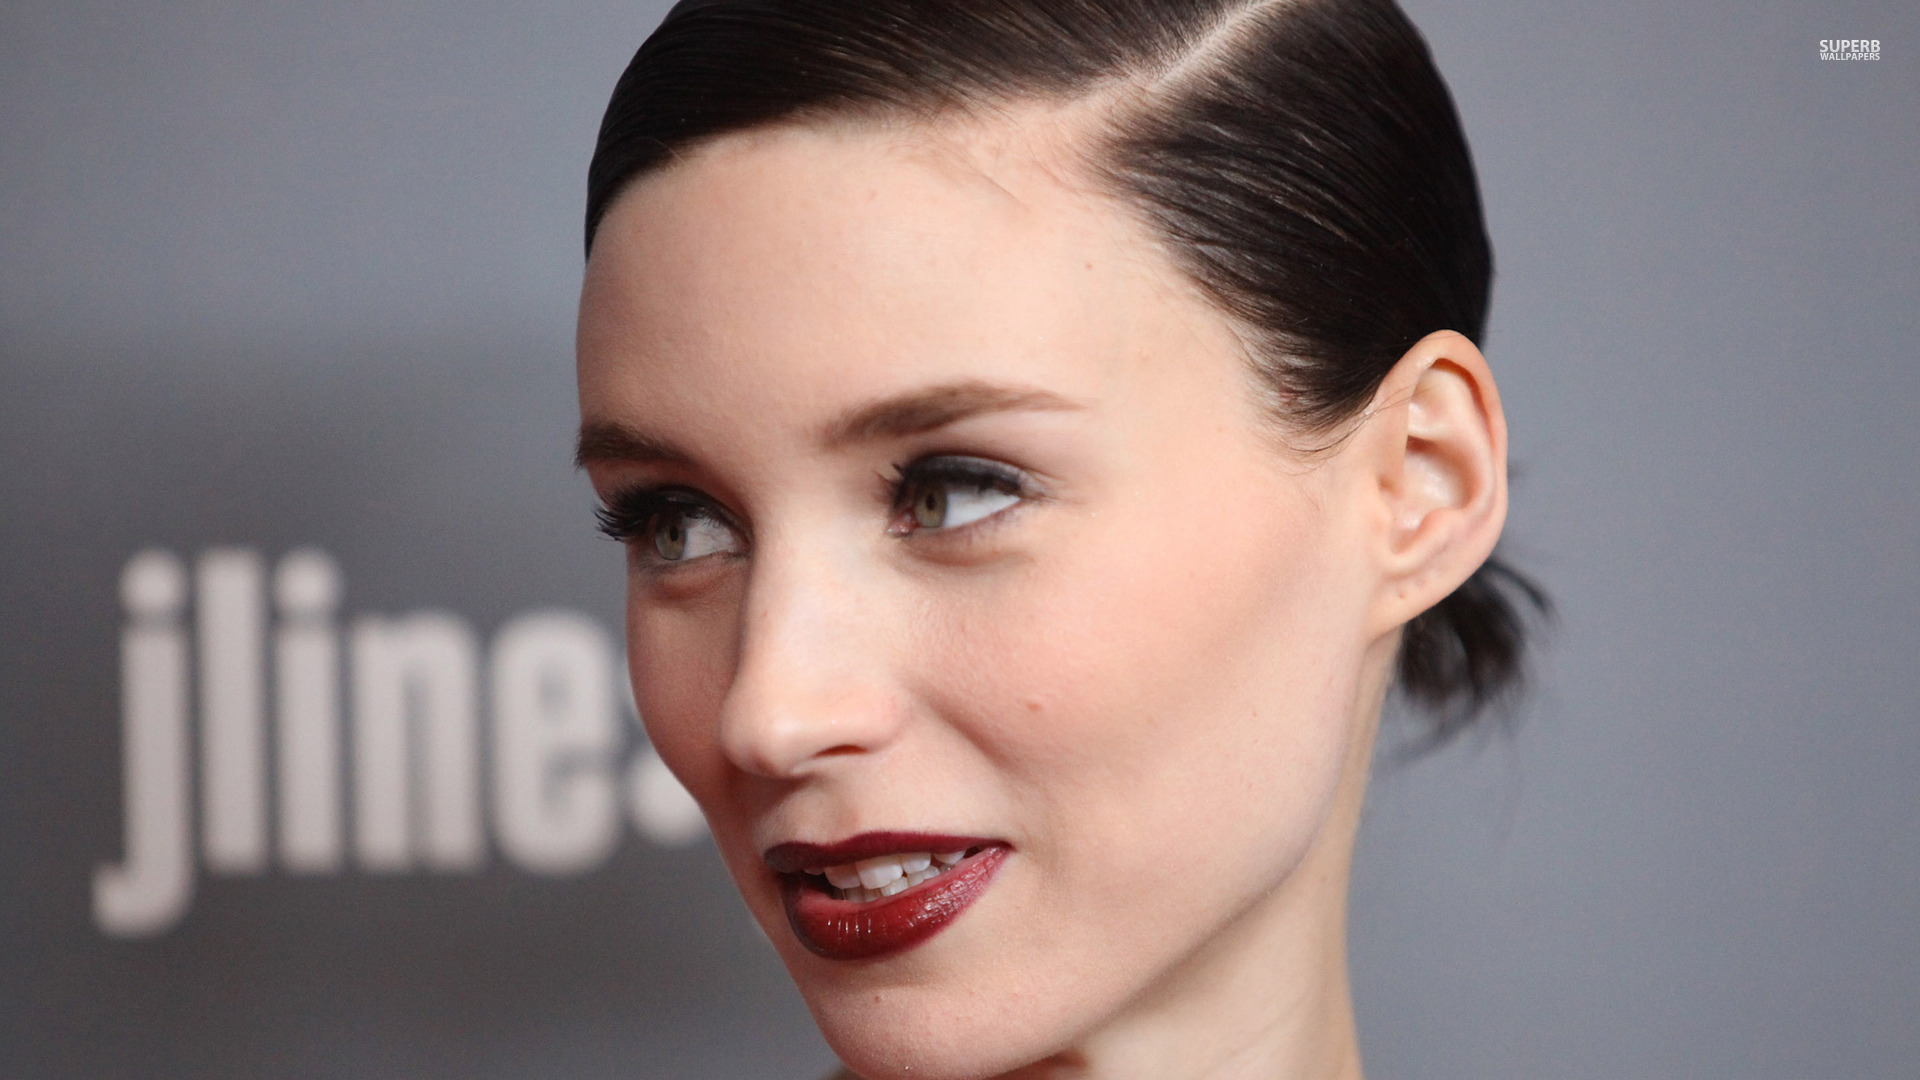 Rooney Mara Wallpapers Full HD Images For Mac